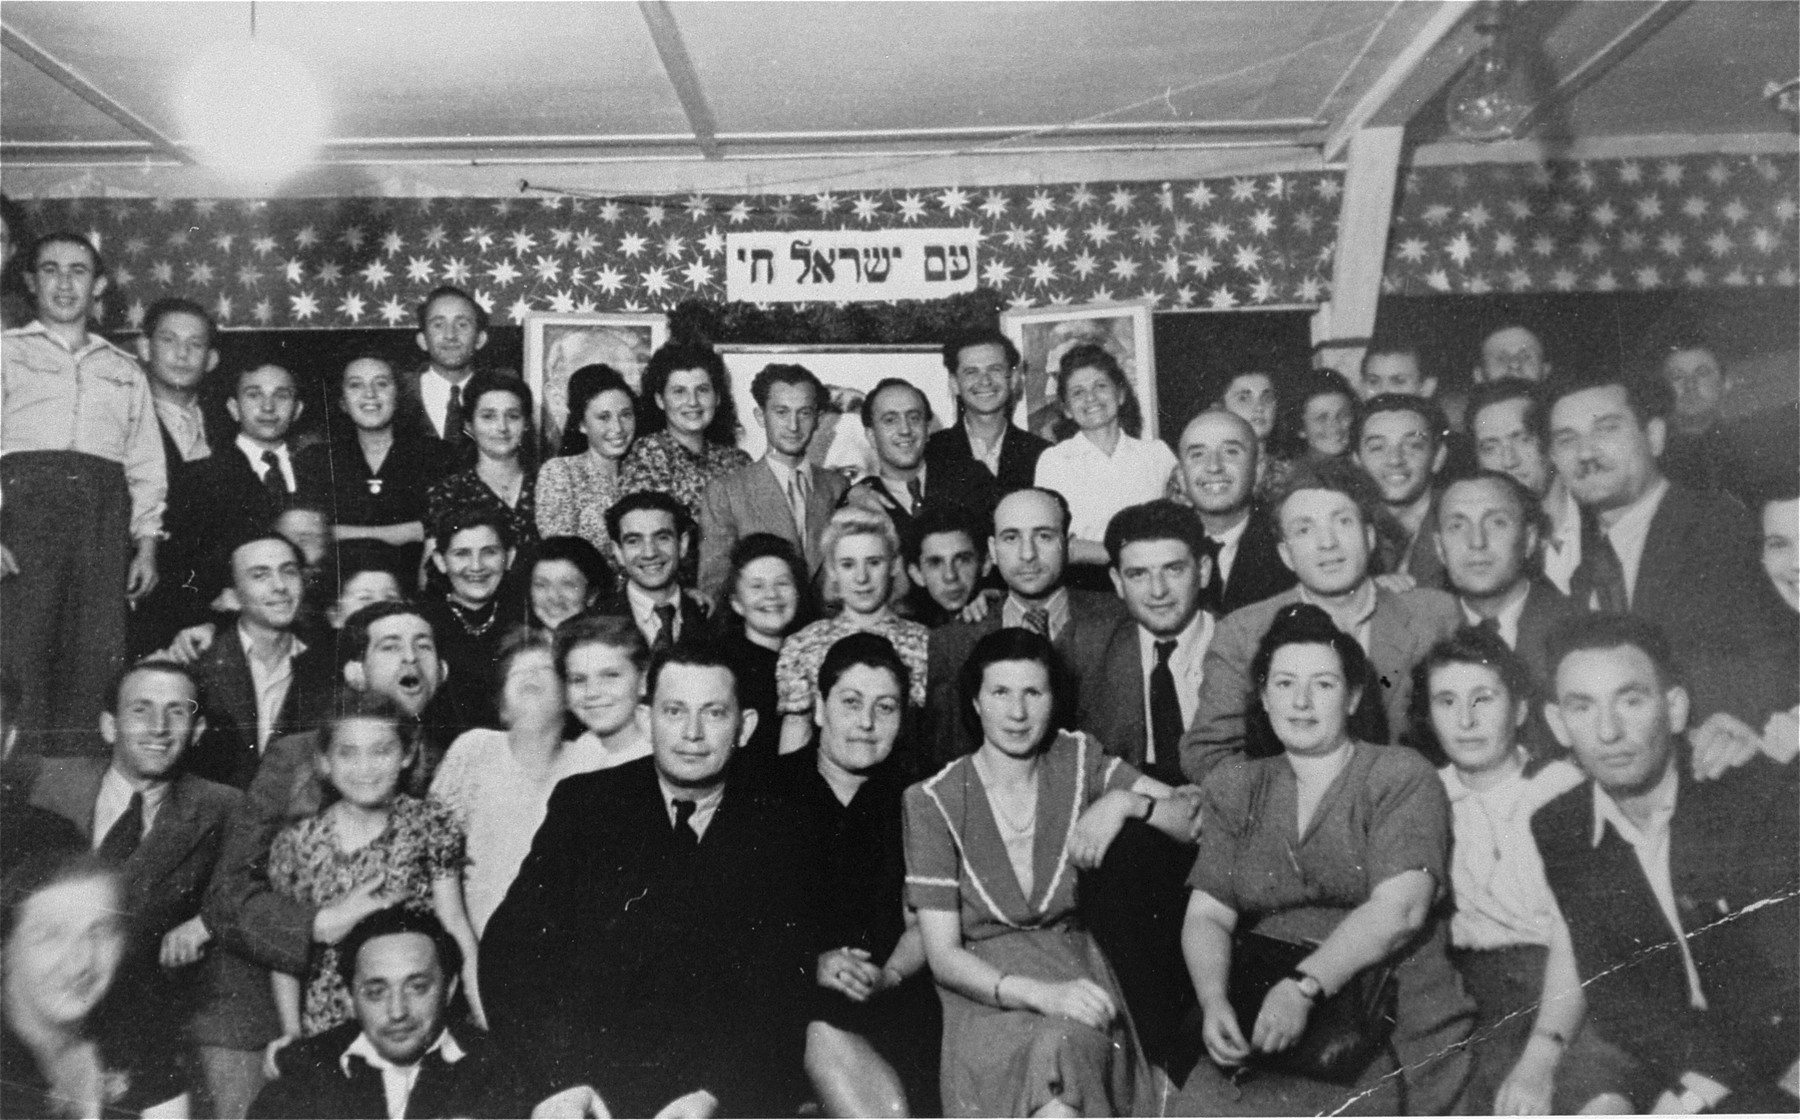 Group portrait of residents of the Schlachtensee displaced persons camp.    Those pictured include Goldi Bimbad, Murka Bimbad, Abraham Wasserman, and Lusia Gliklich.